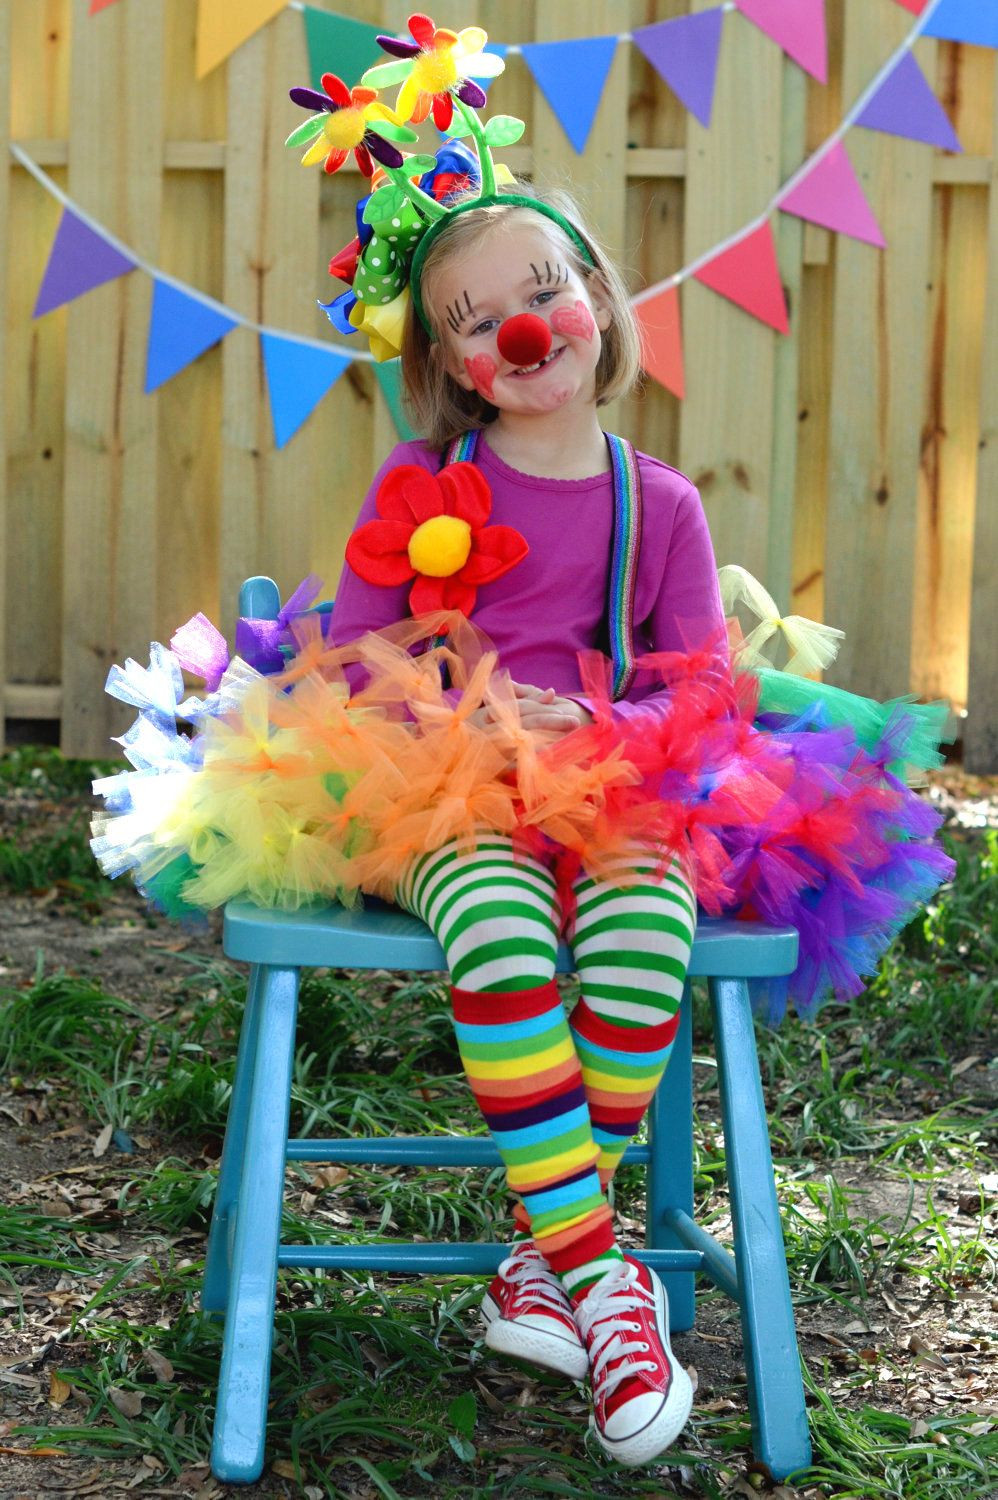 Best ideas about Circus Costumes DIY . Save or Pin Atutudes Circus Clown Rainbow Pettitutu by atutudes on Now.